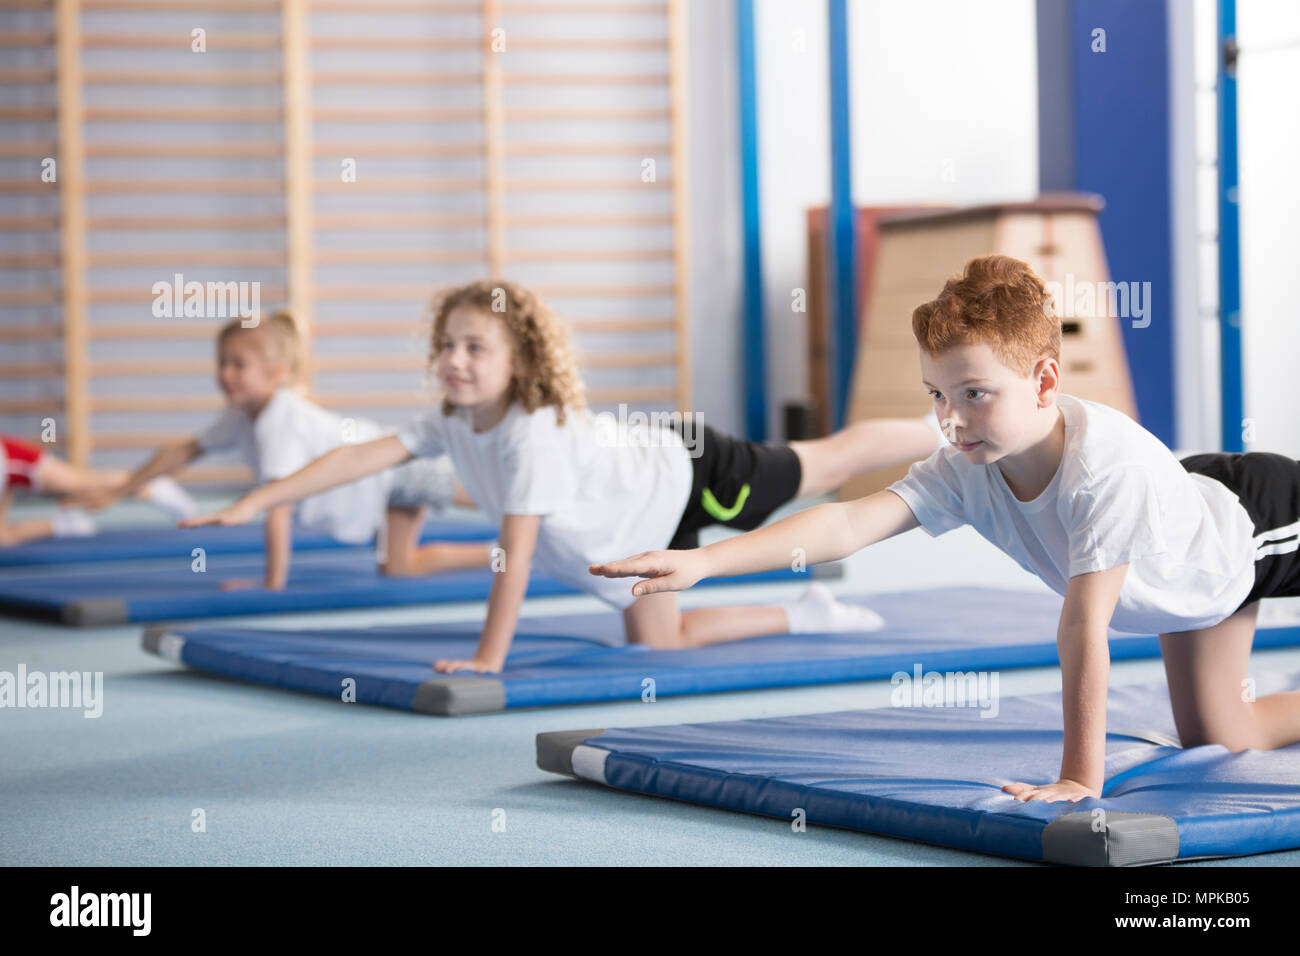 Primary school boy and other kids exercising a balancing table yoga pose during extracurricular gym class to help with posture and core body strength Stock Photo